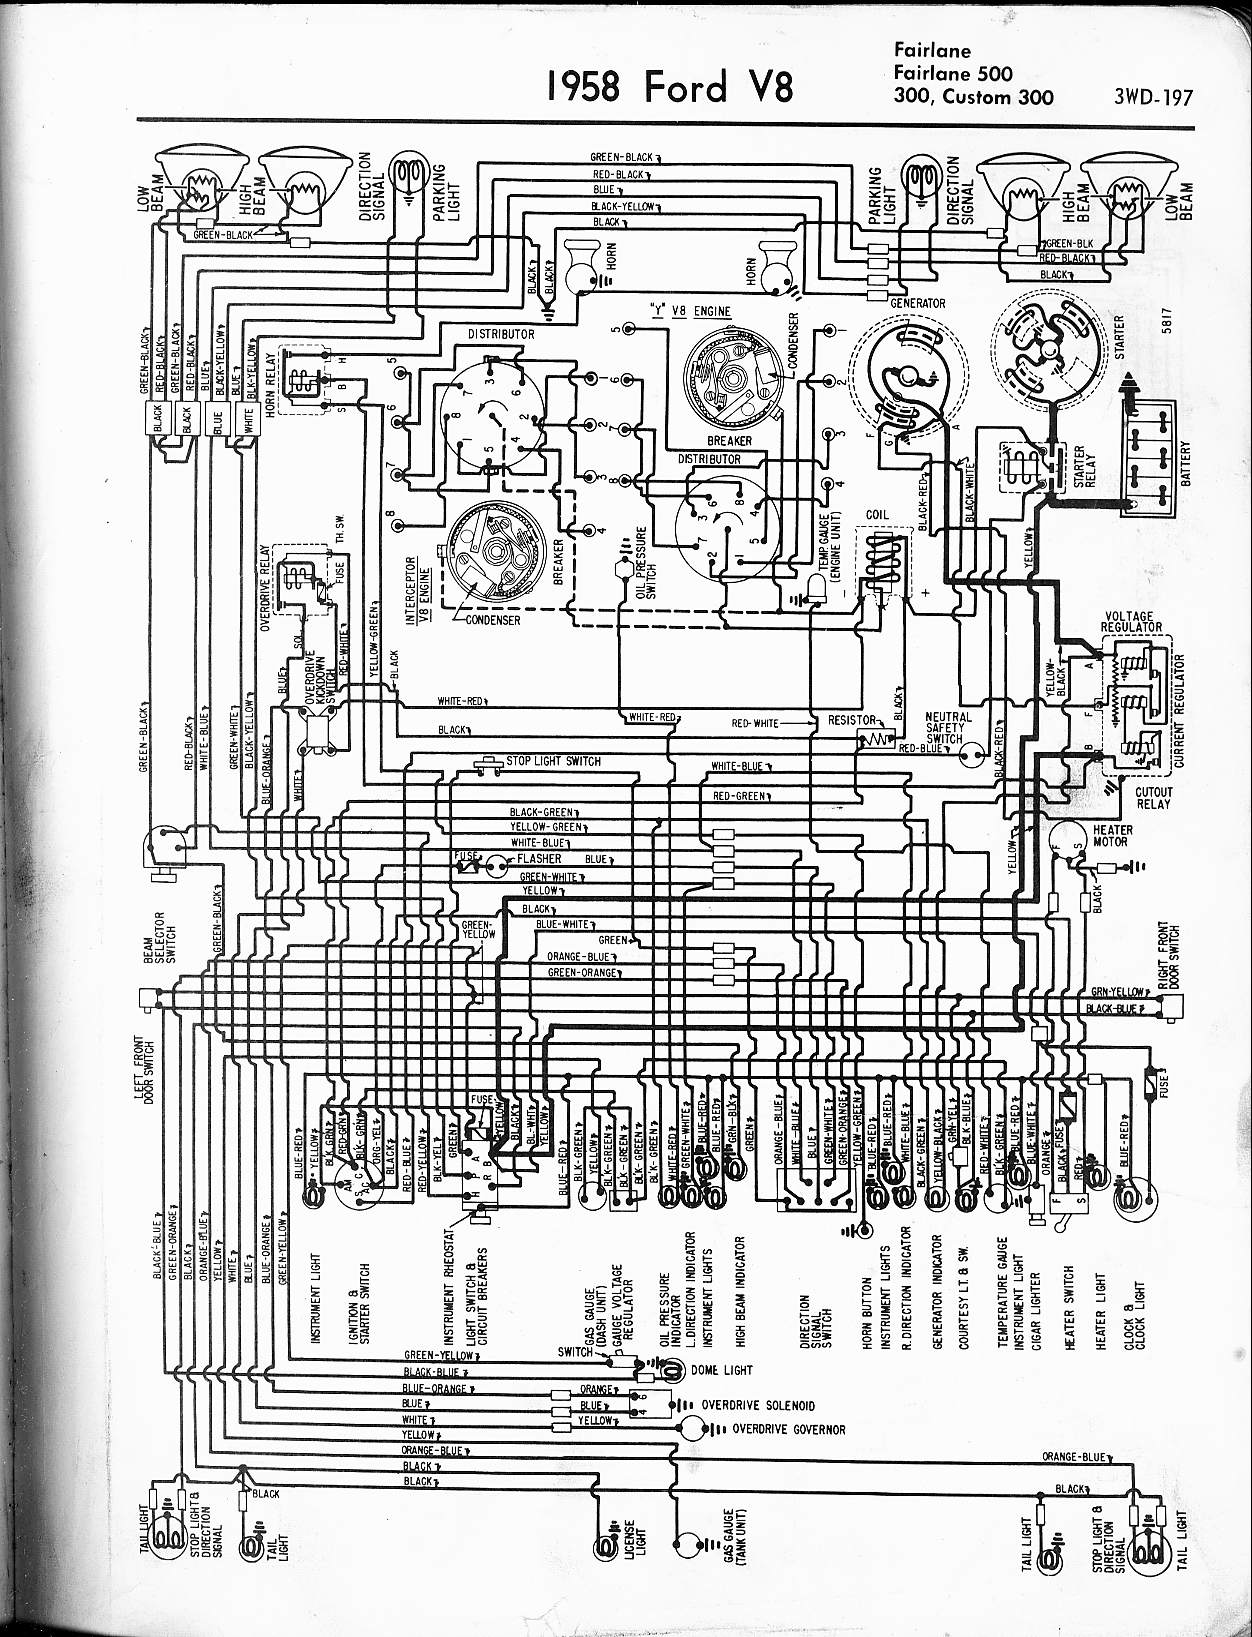 1965 Ford Thunderbird Wiring Diagrams